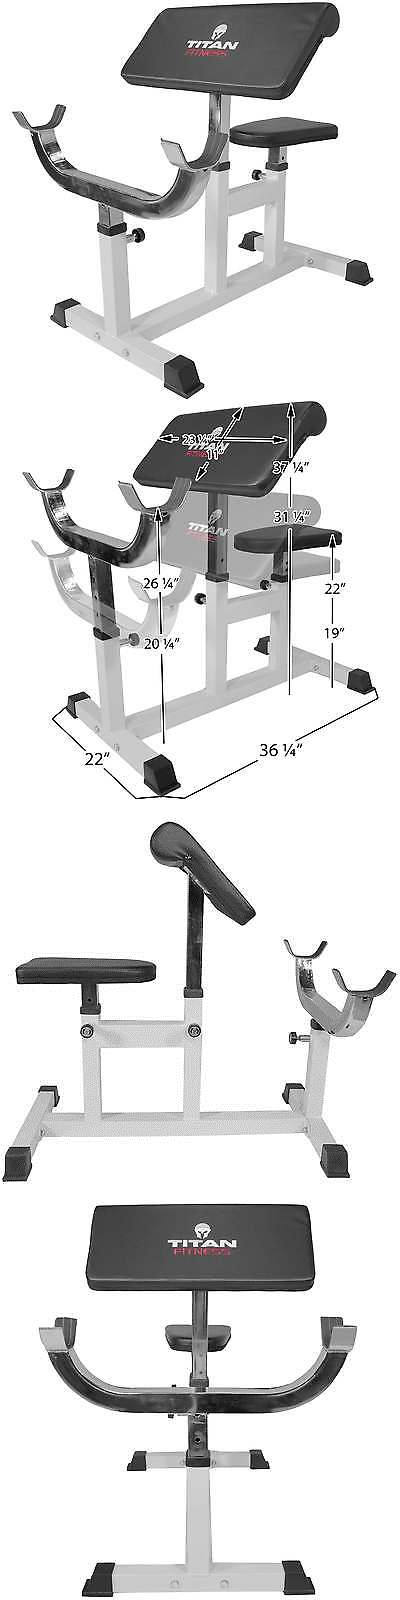 Home Gyms 158923: Titan Preacher Curl Station Seated Strength Training Bench Bicep Home Gym -> BUY IT NOW ONLY: $109 on eBay!